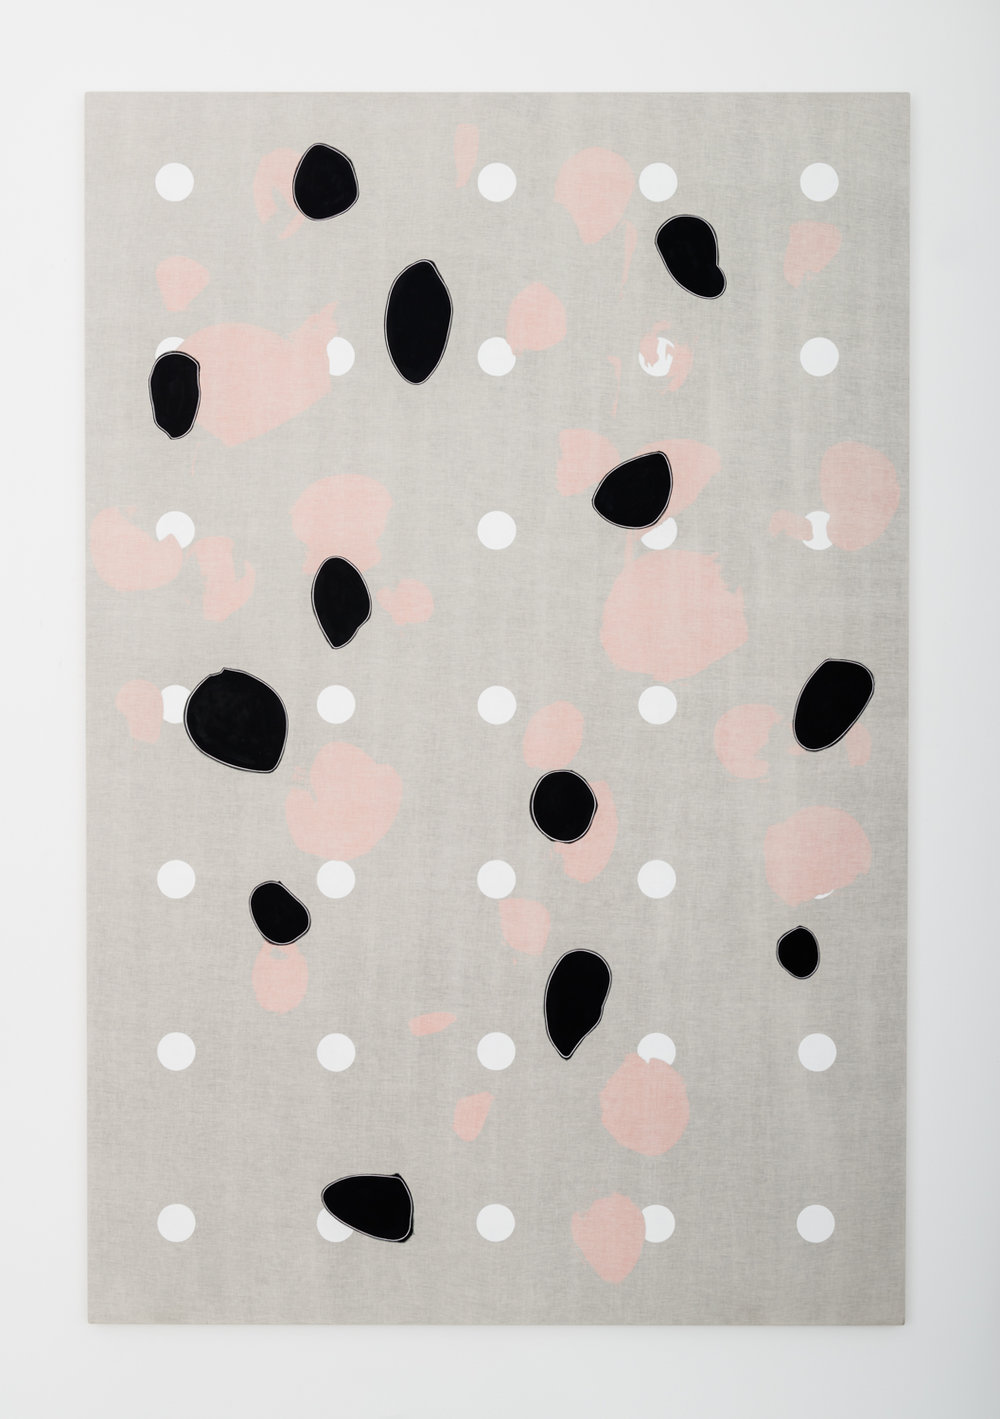 Zak Prekop Three Patterns (White) 2015 Oil on muslin 96 x 64 in (243.84h x 162.56w cm) ZP359